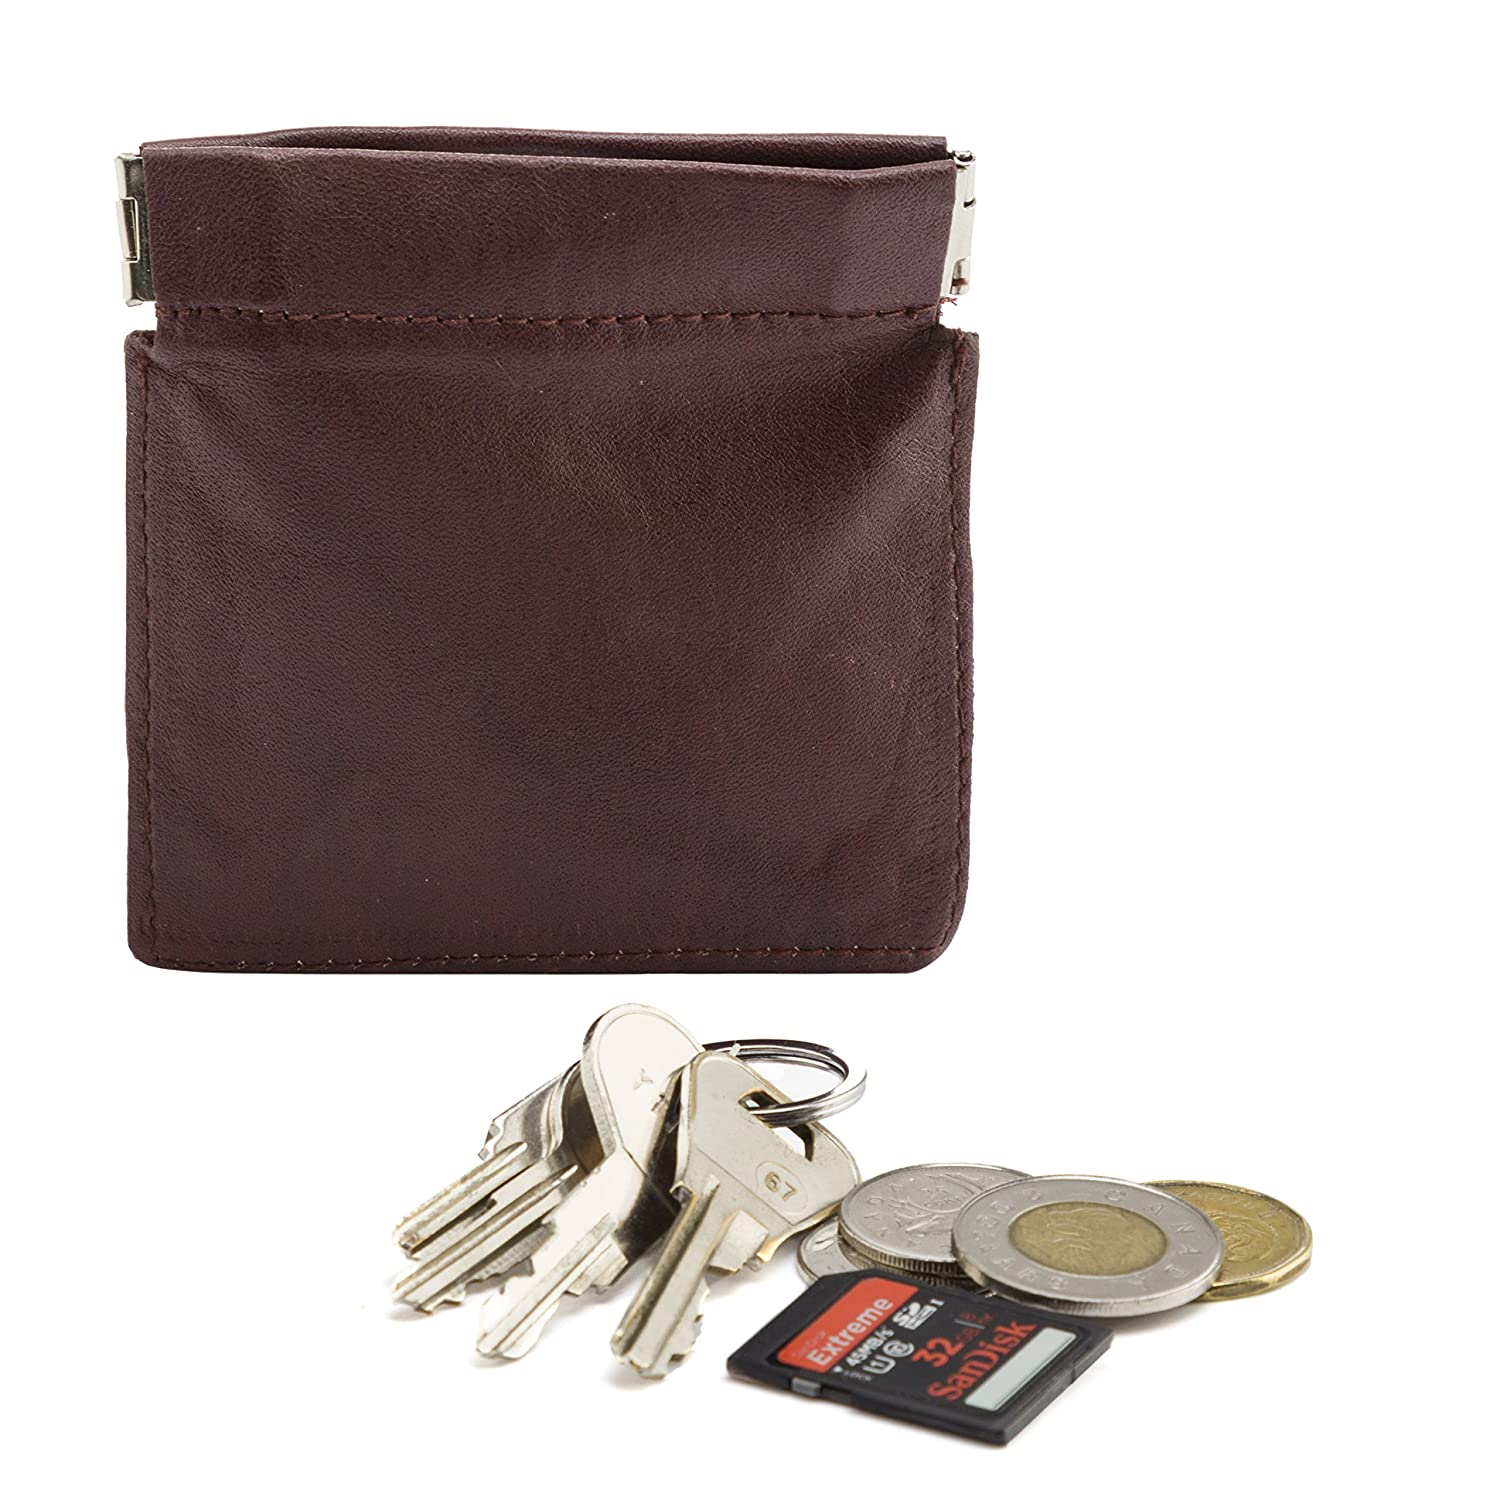 Mens Genuine Leather Coin Pouch Change Purse Holder Wallet SD 015